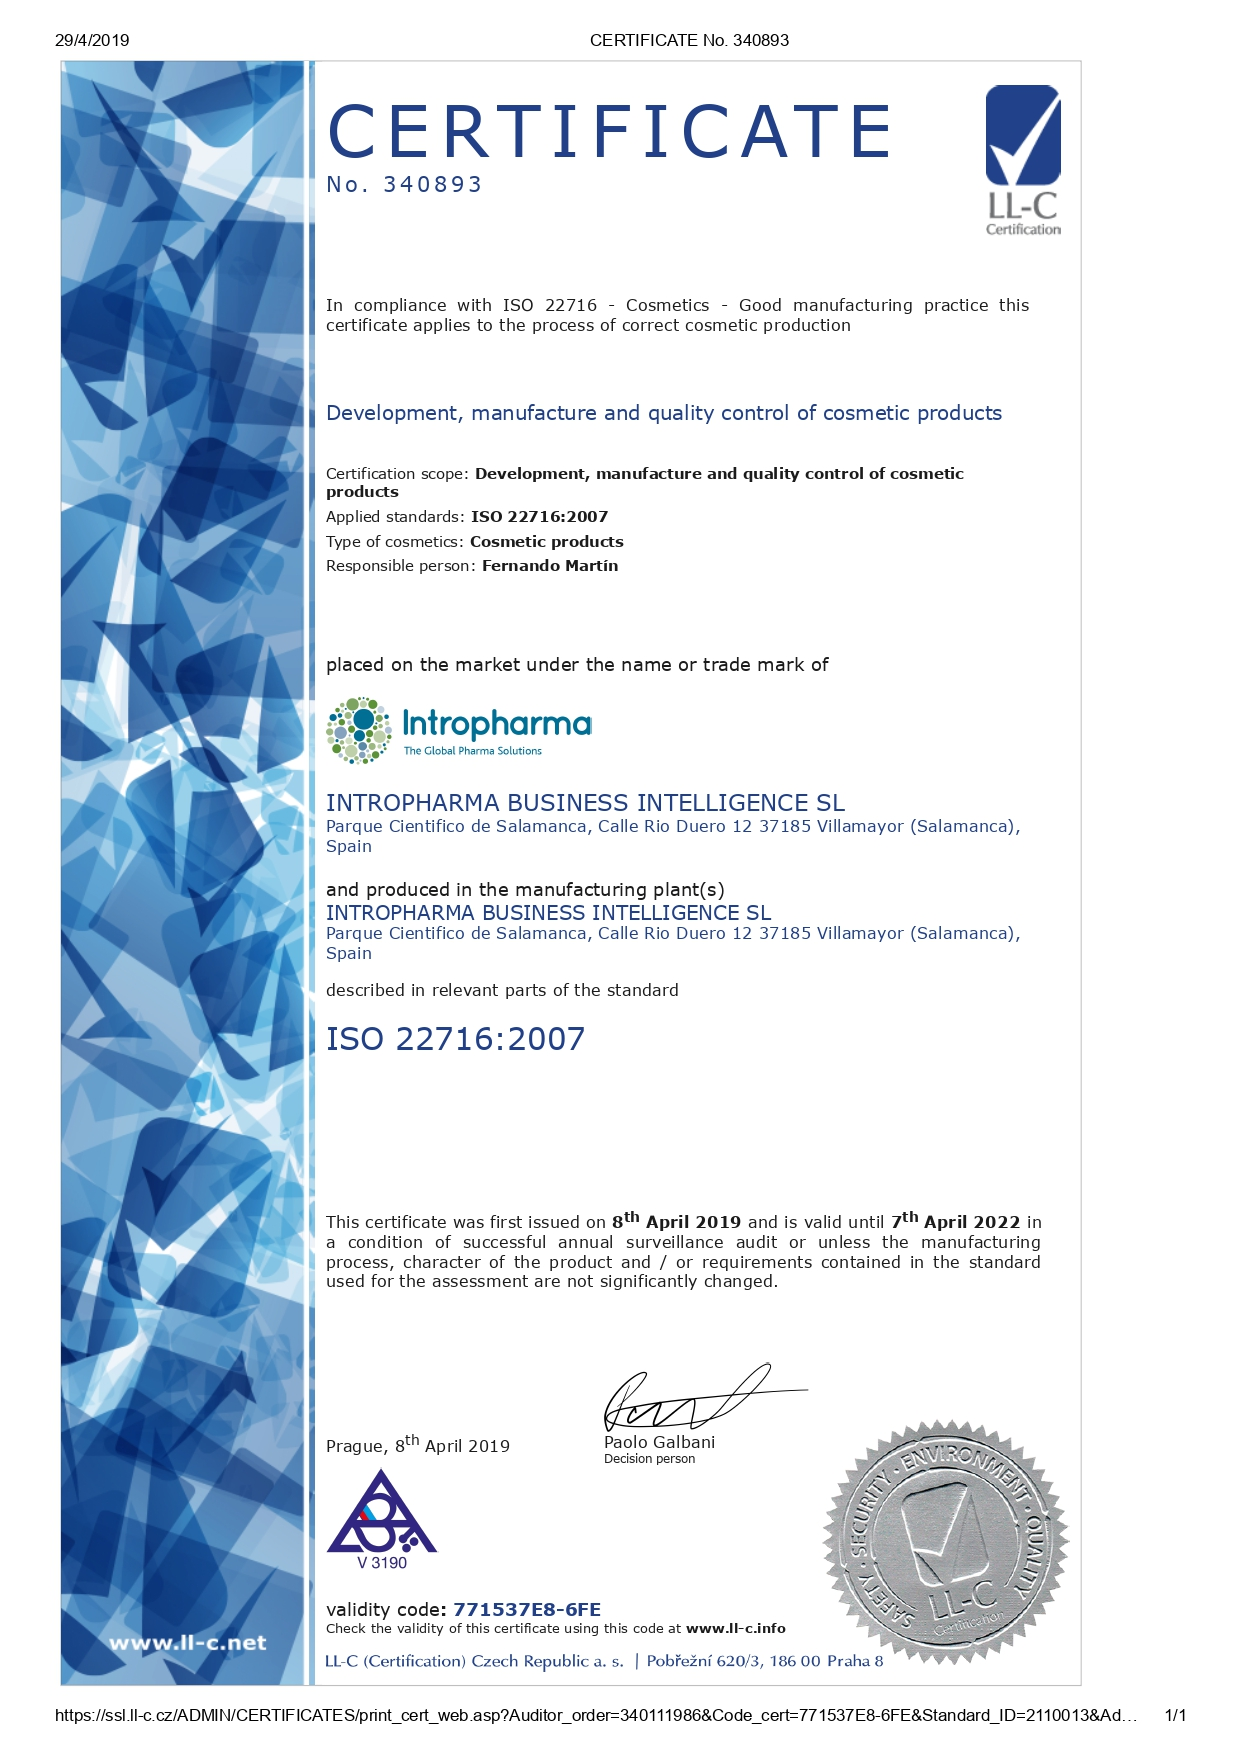 CERTIFICATE No. 340893-1_page-0001